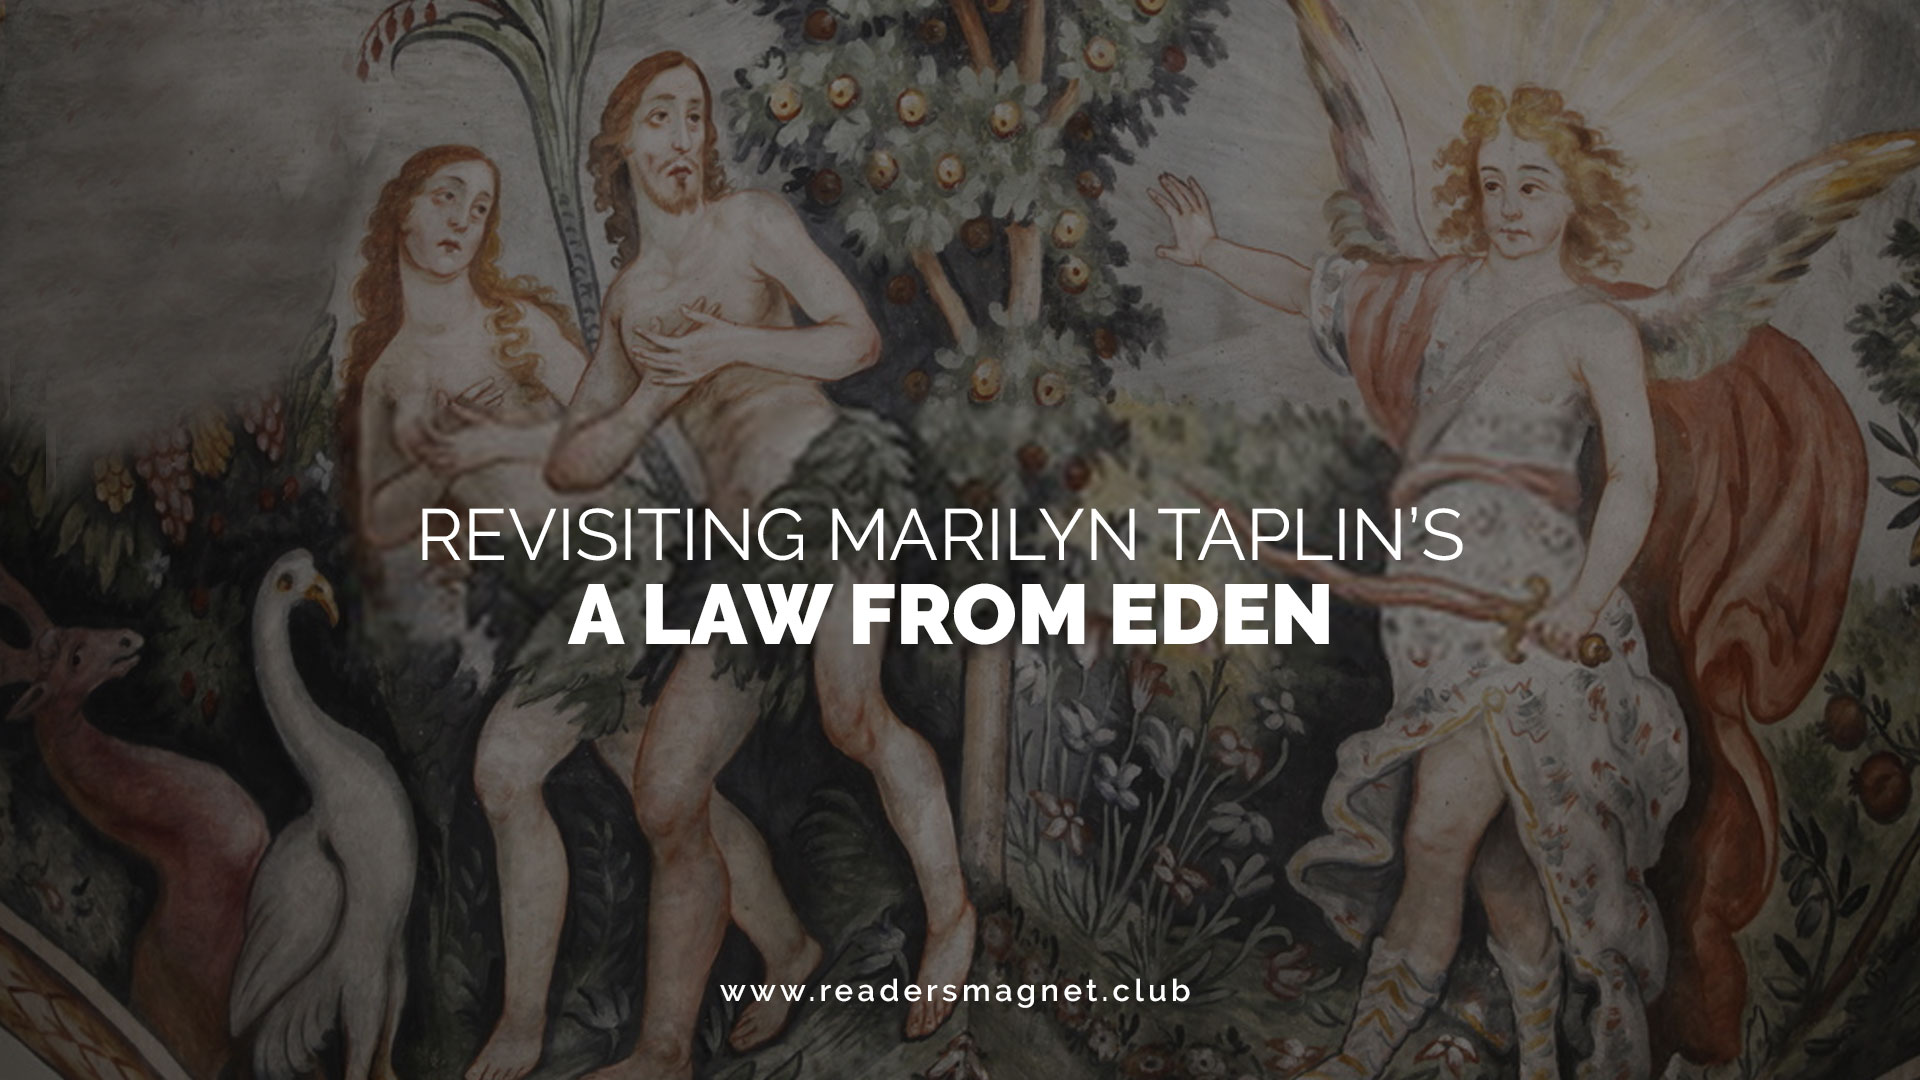 Revisiting-Marilyn-Taplins-A-Law-from-Eden banner